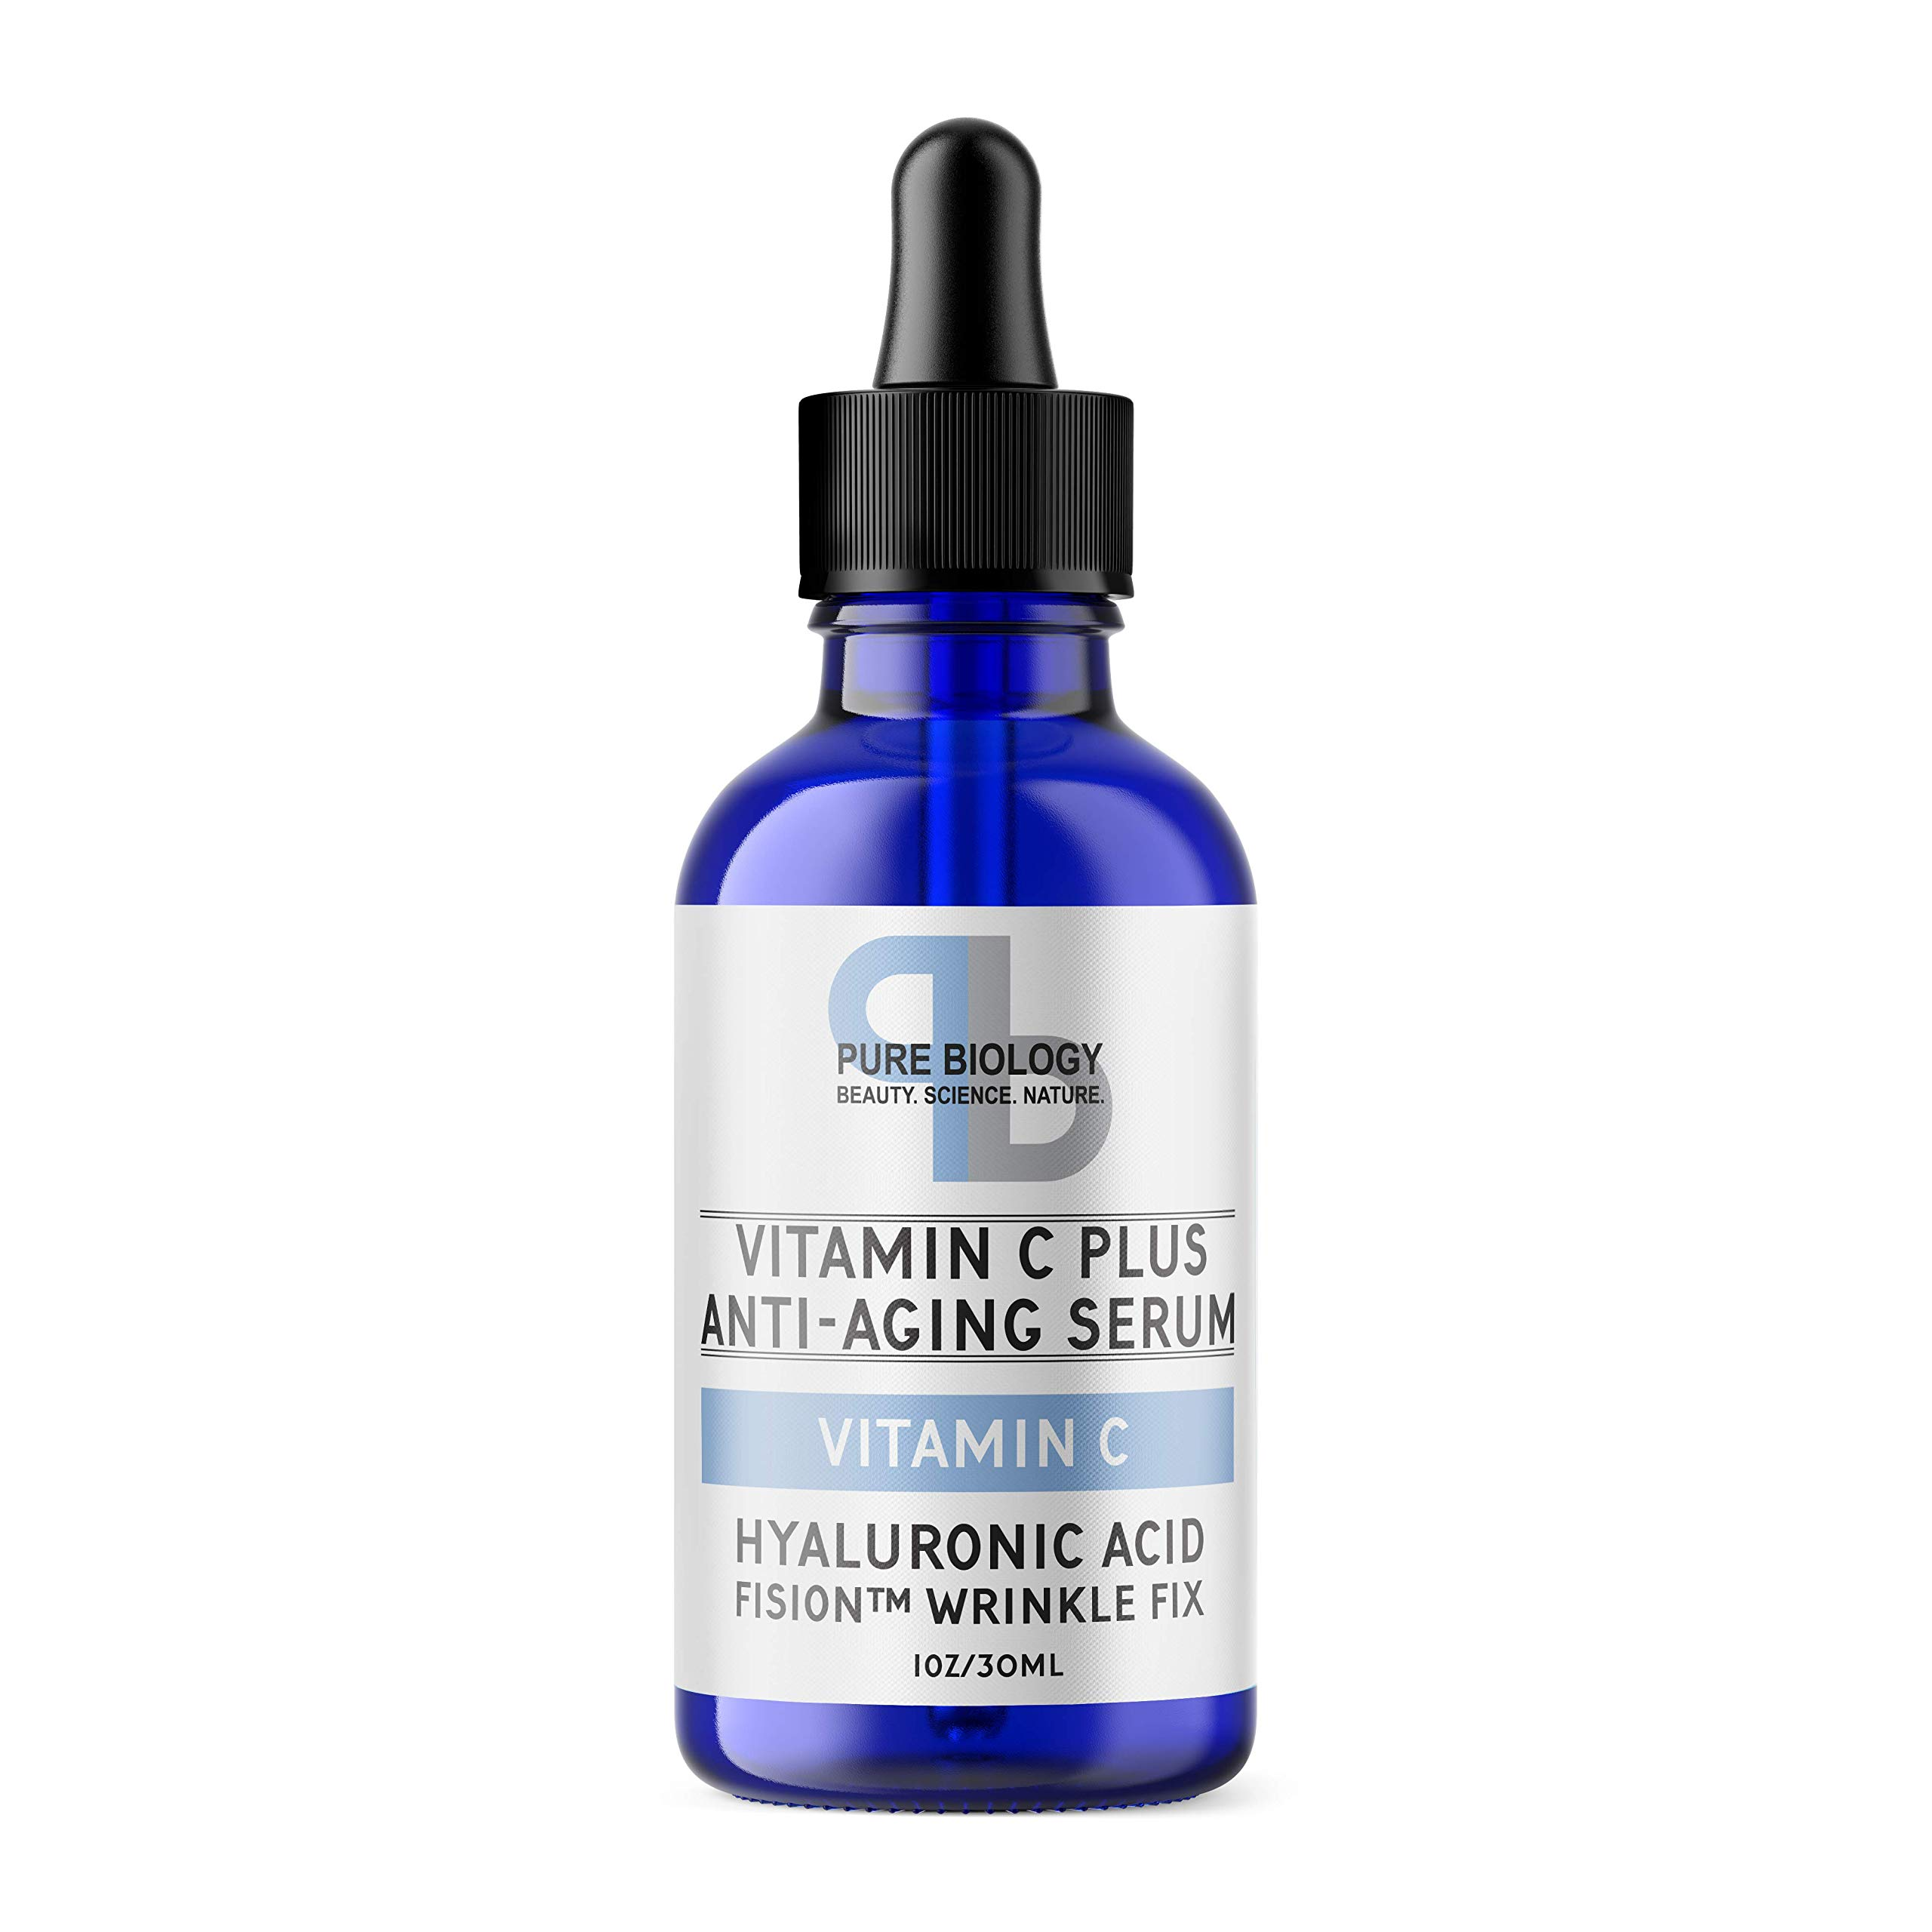 Pure Biology ''C+'' Vitamin C Serum (30%) with Hyaluronic Acid, Witch Hazel, Vitamin E & Breakthrough Anti Aging, Anti Wrinkle Complex - Lighten Dark Spots, Acne Scars - Men & Women by Pure Biology